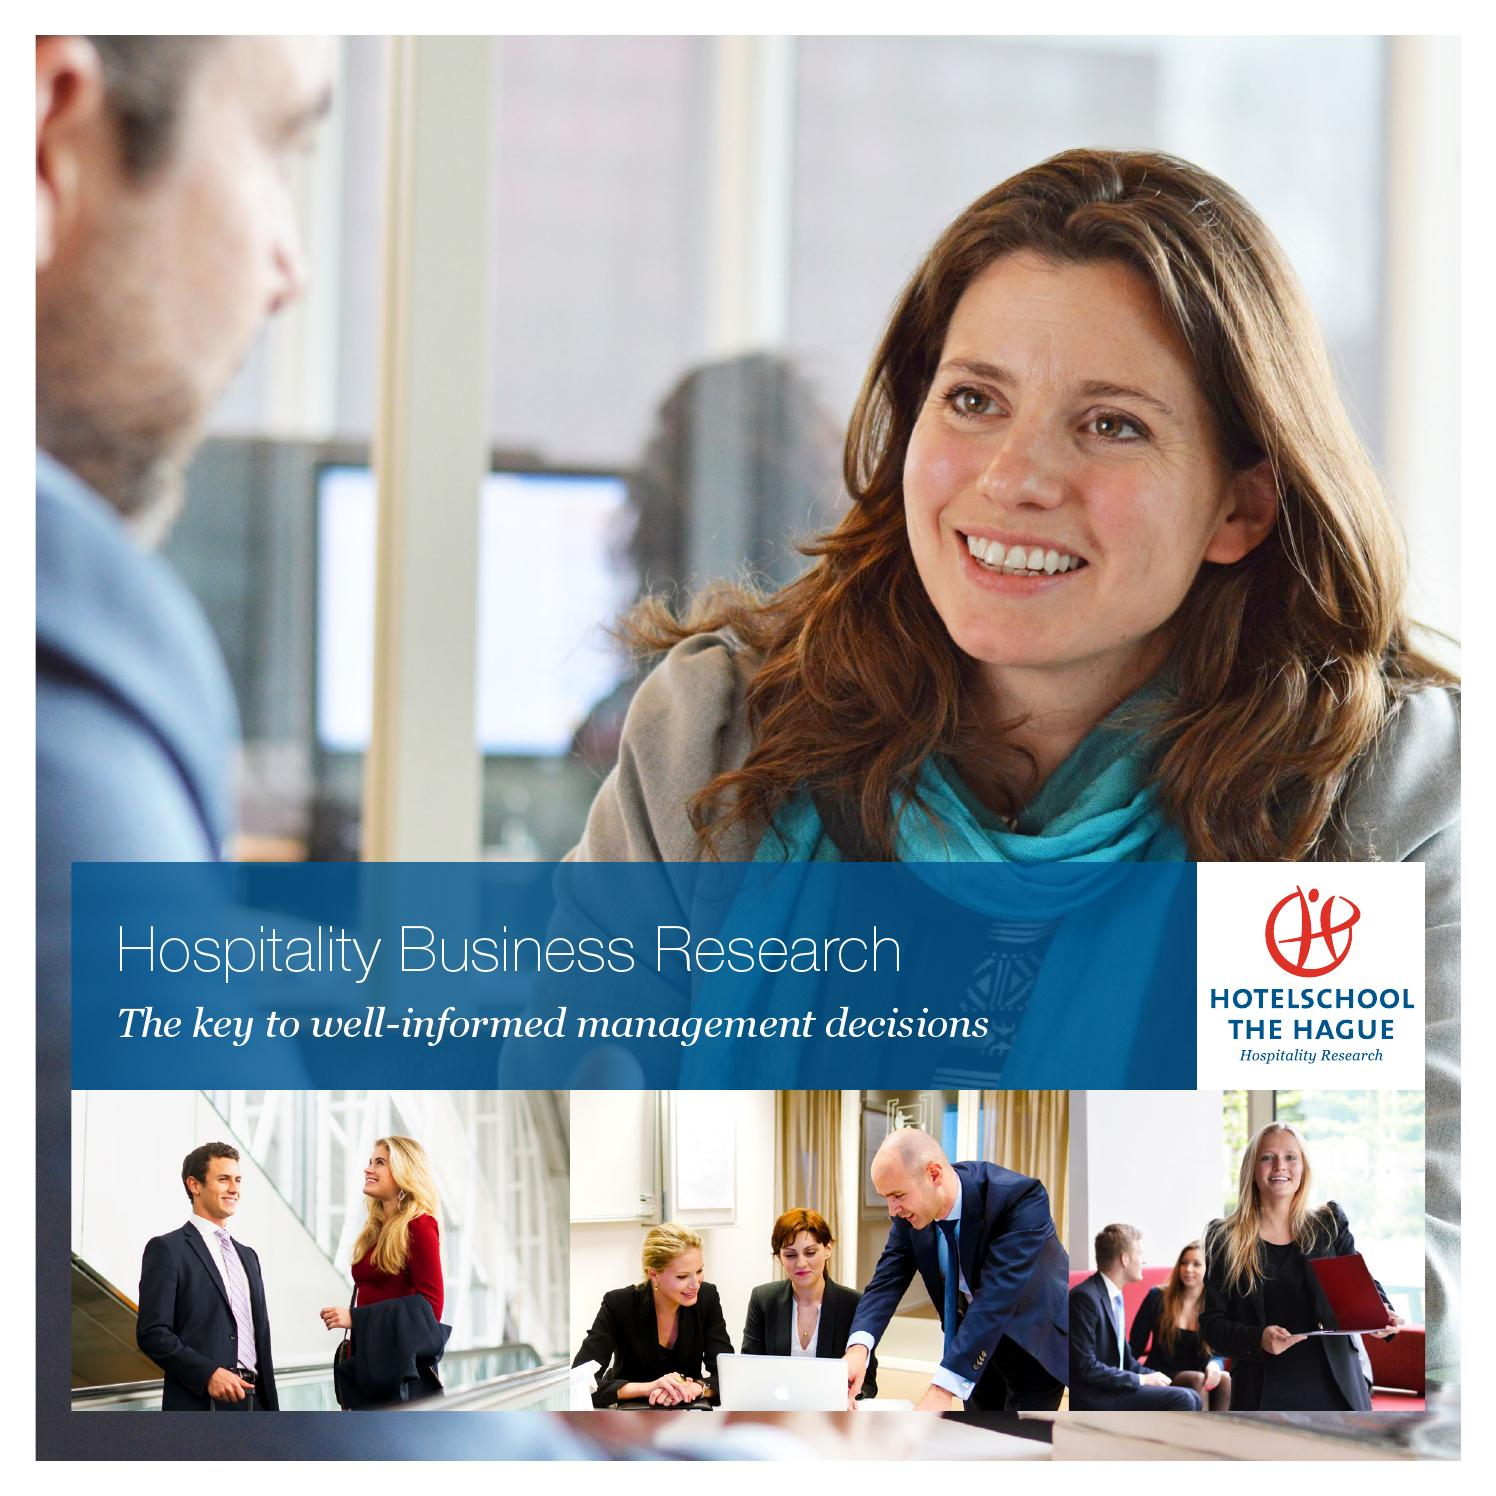 hospitality research Coyle hospitality group provides best-in-breed mystery shopping, quality assurance, and marketing research programs to over 300 companies around the world.